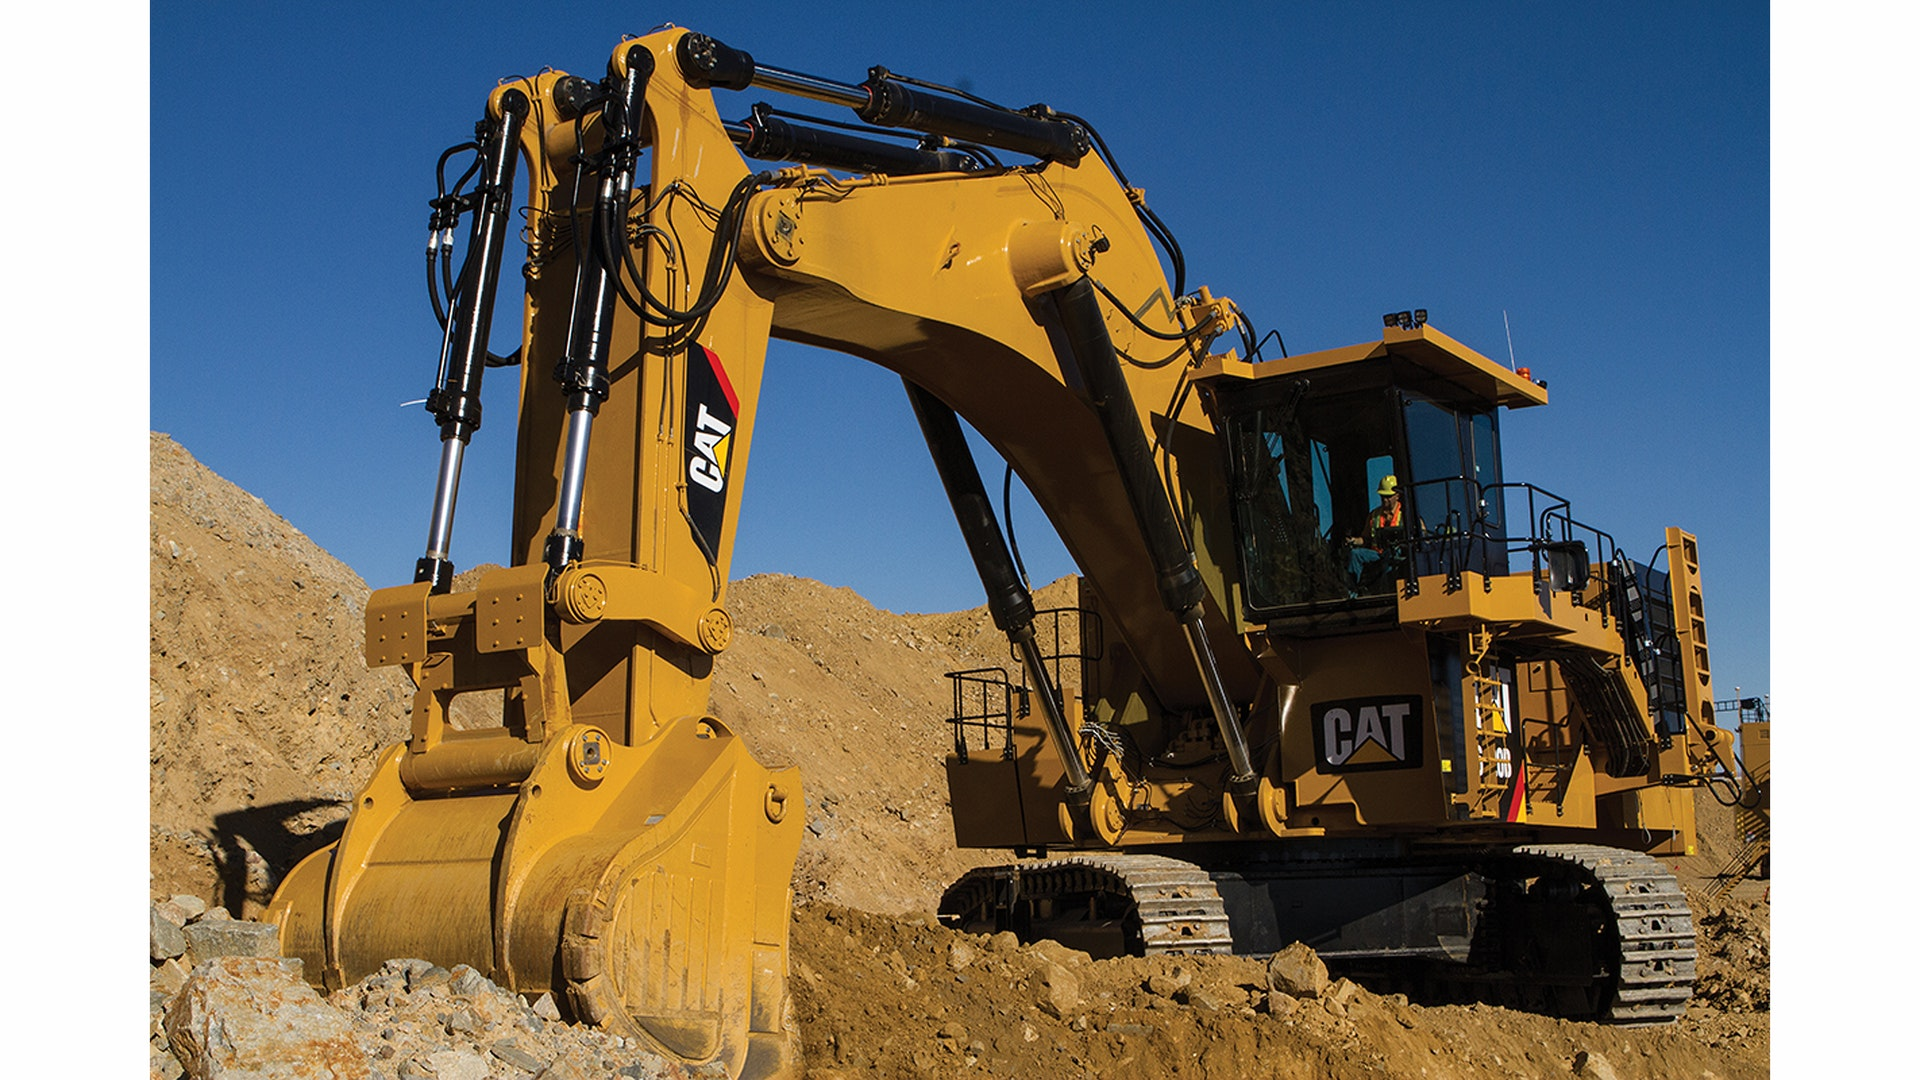 New Cat 6020b Hydraulic Mining Shovel Offers Improved